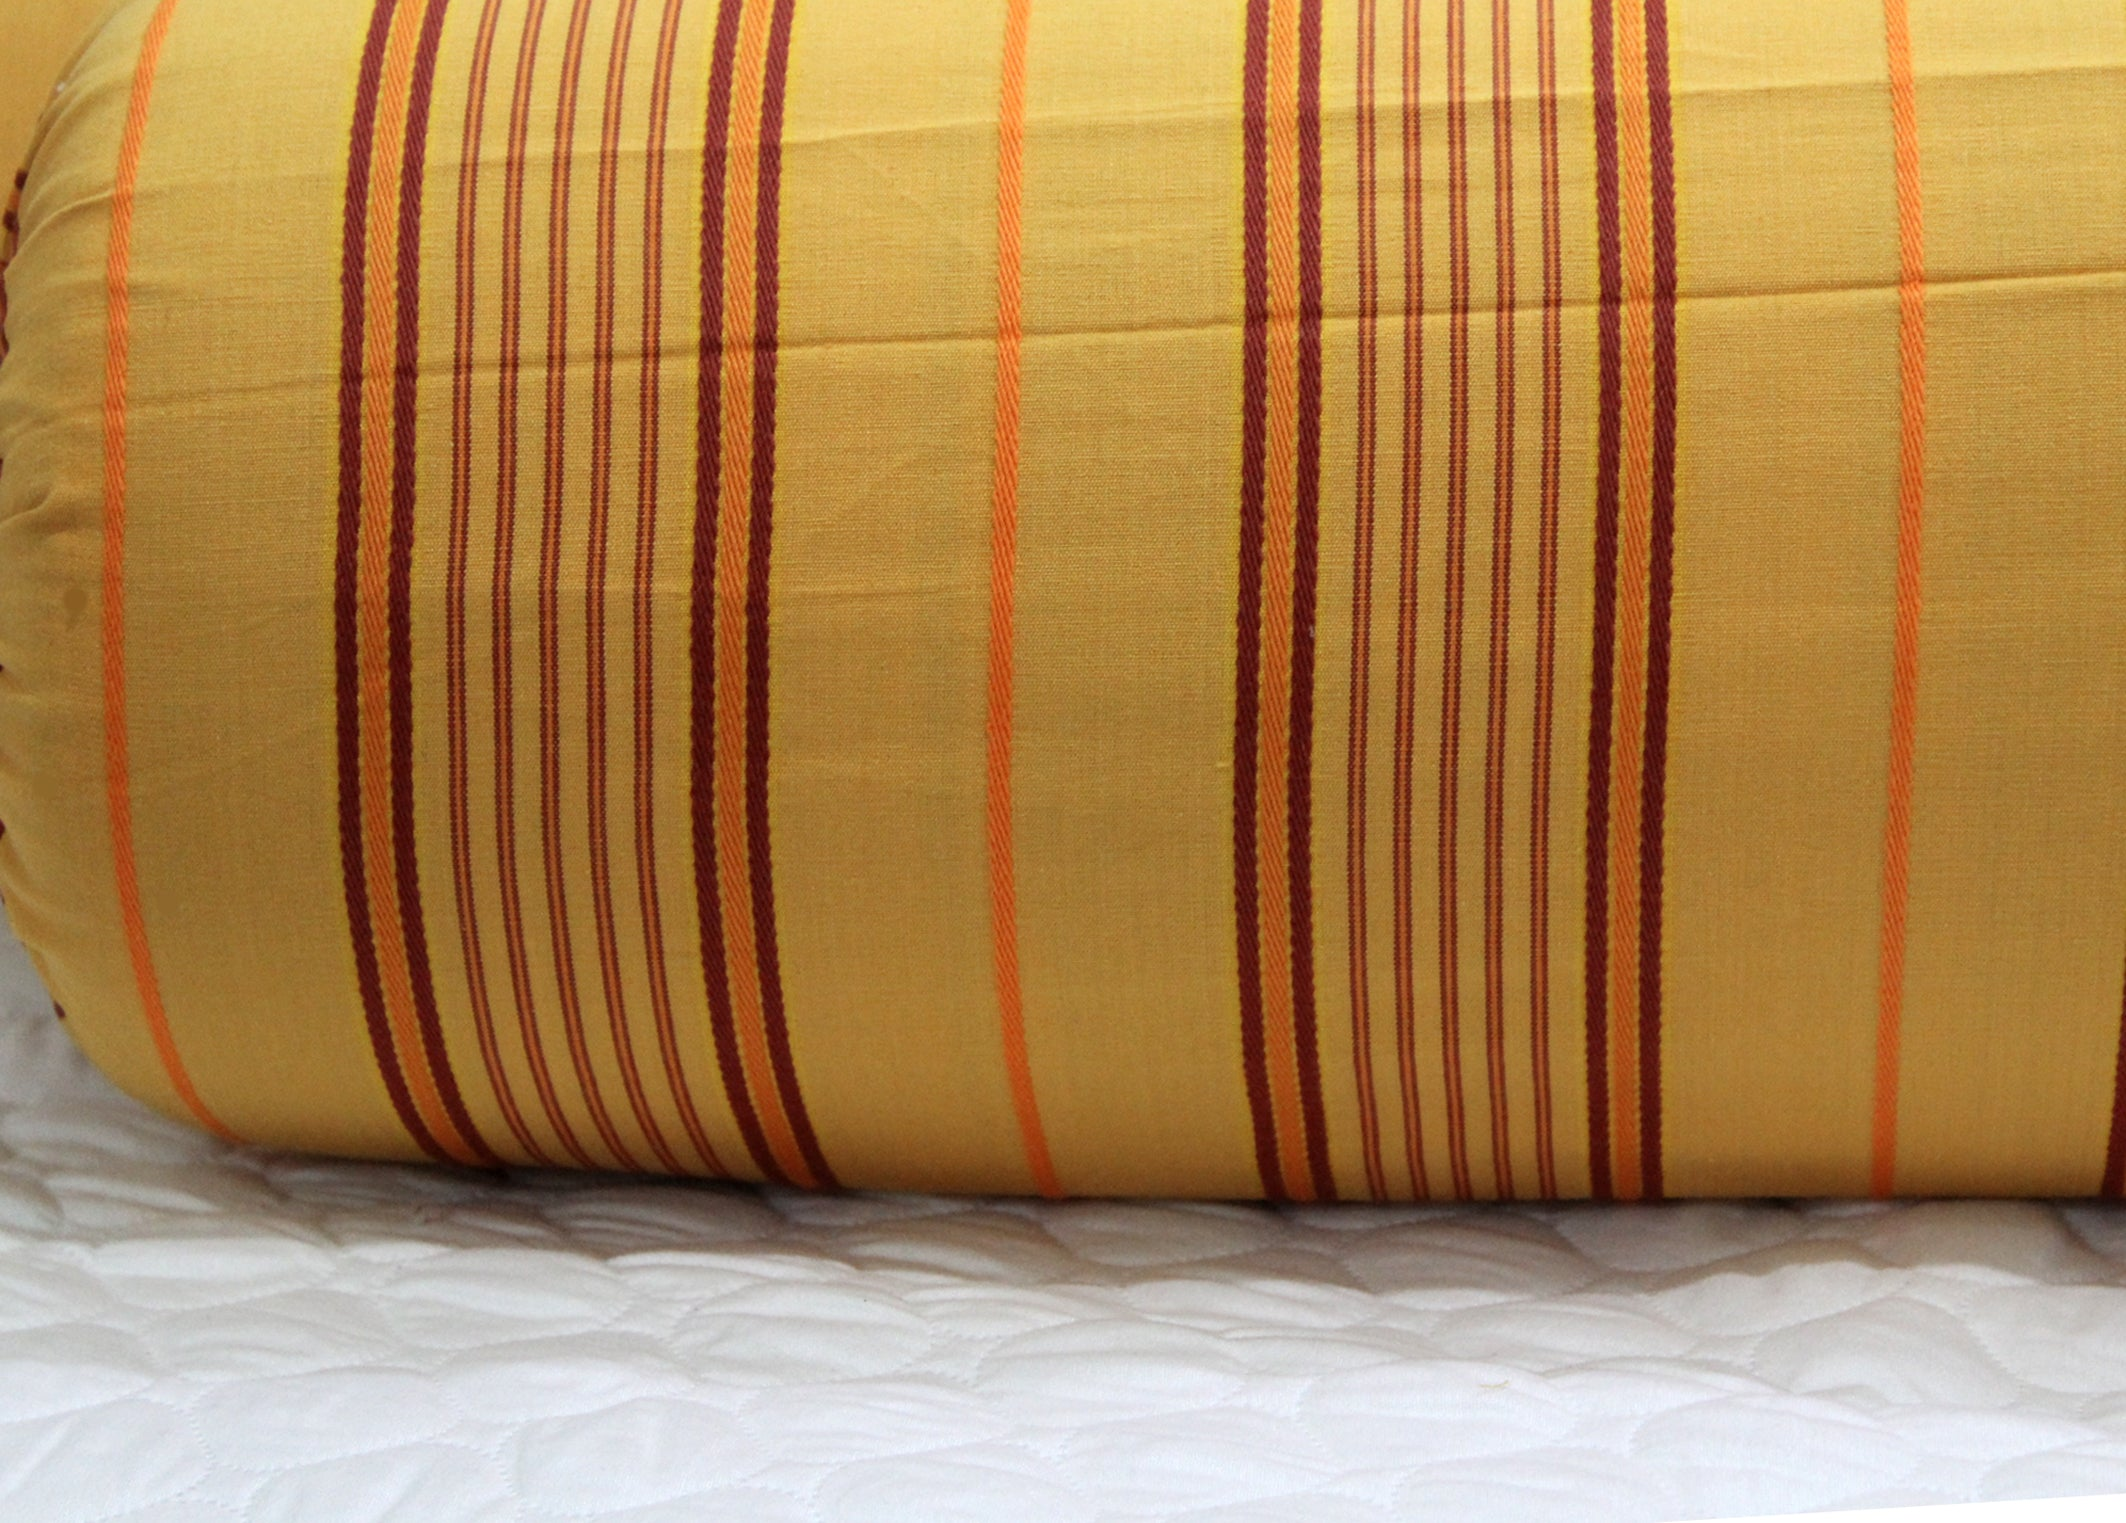 AURAVE Embossed Mustard Stripes Cotton 2 Pcs Bolster Covers